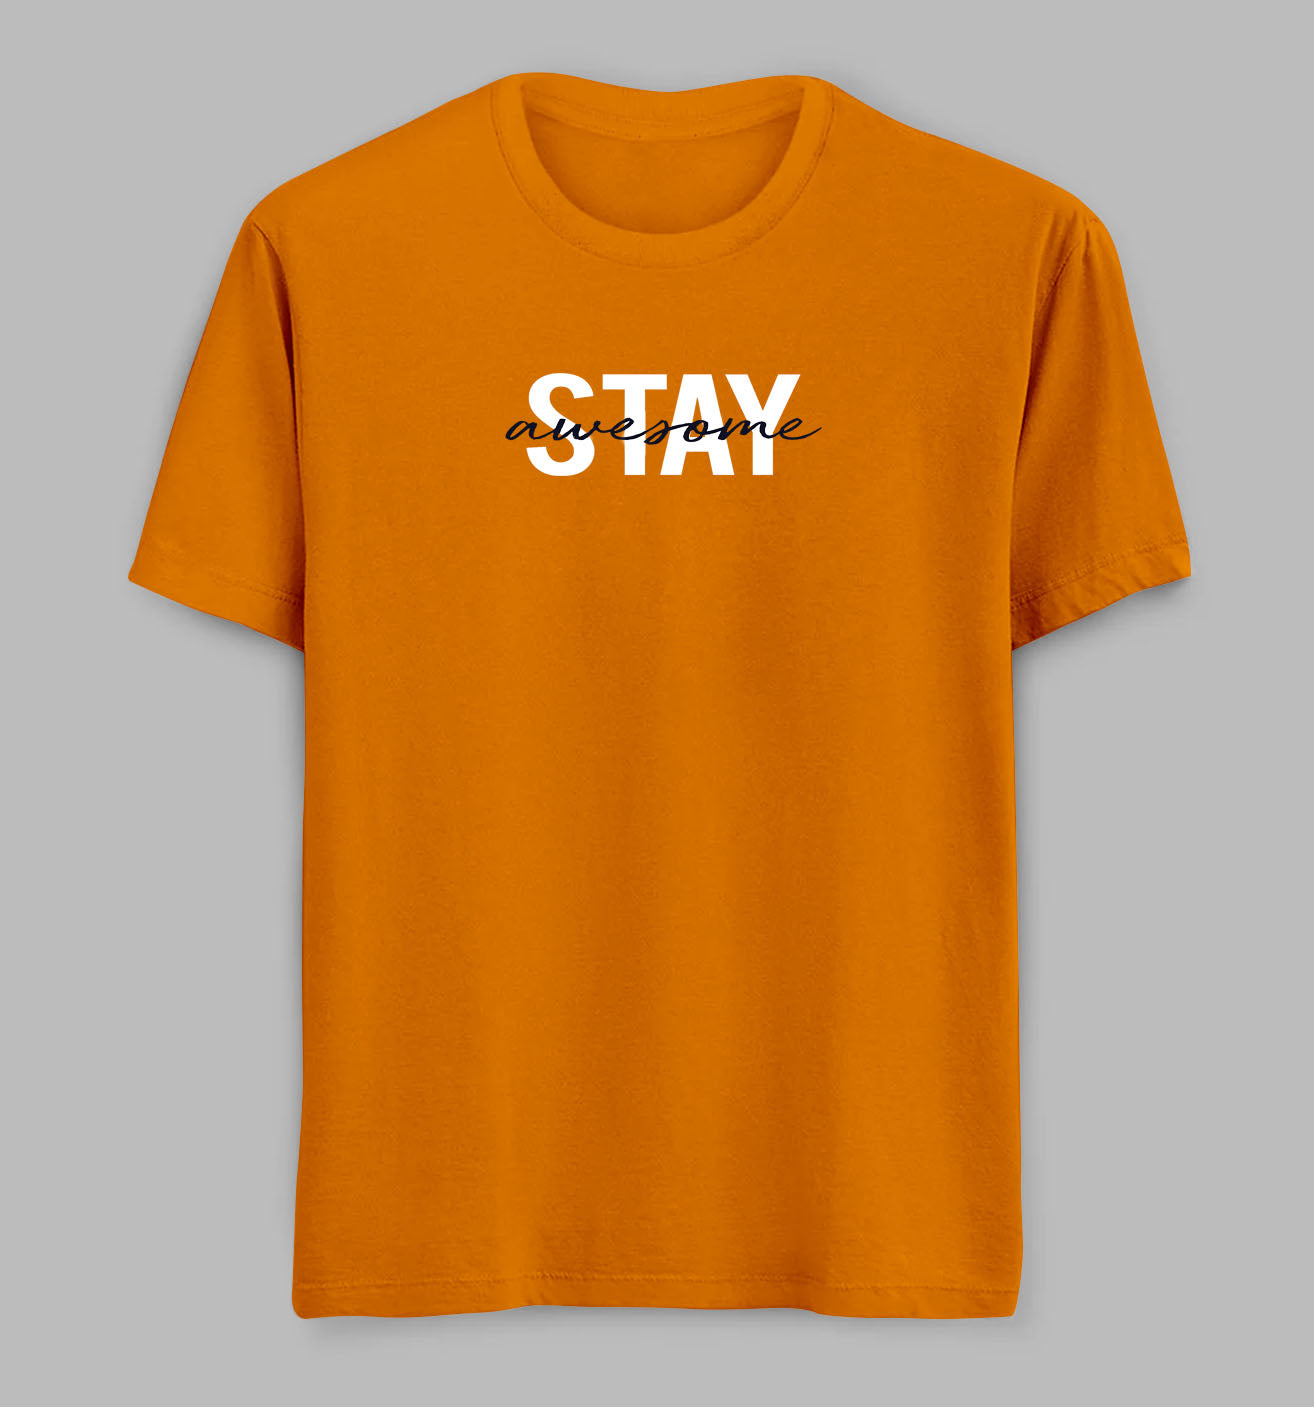 Stay Awesome Tees/ Tshirts